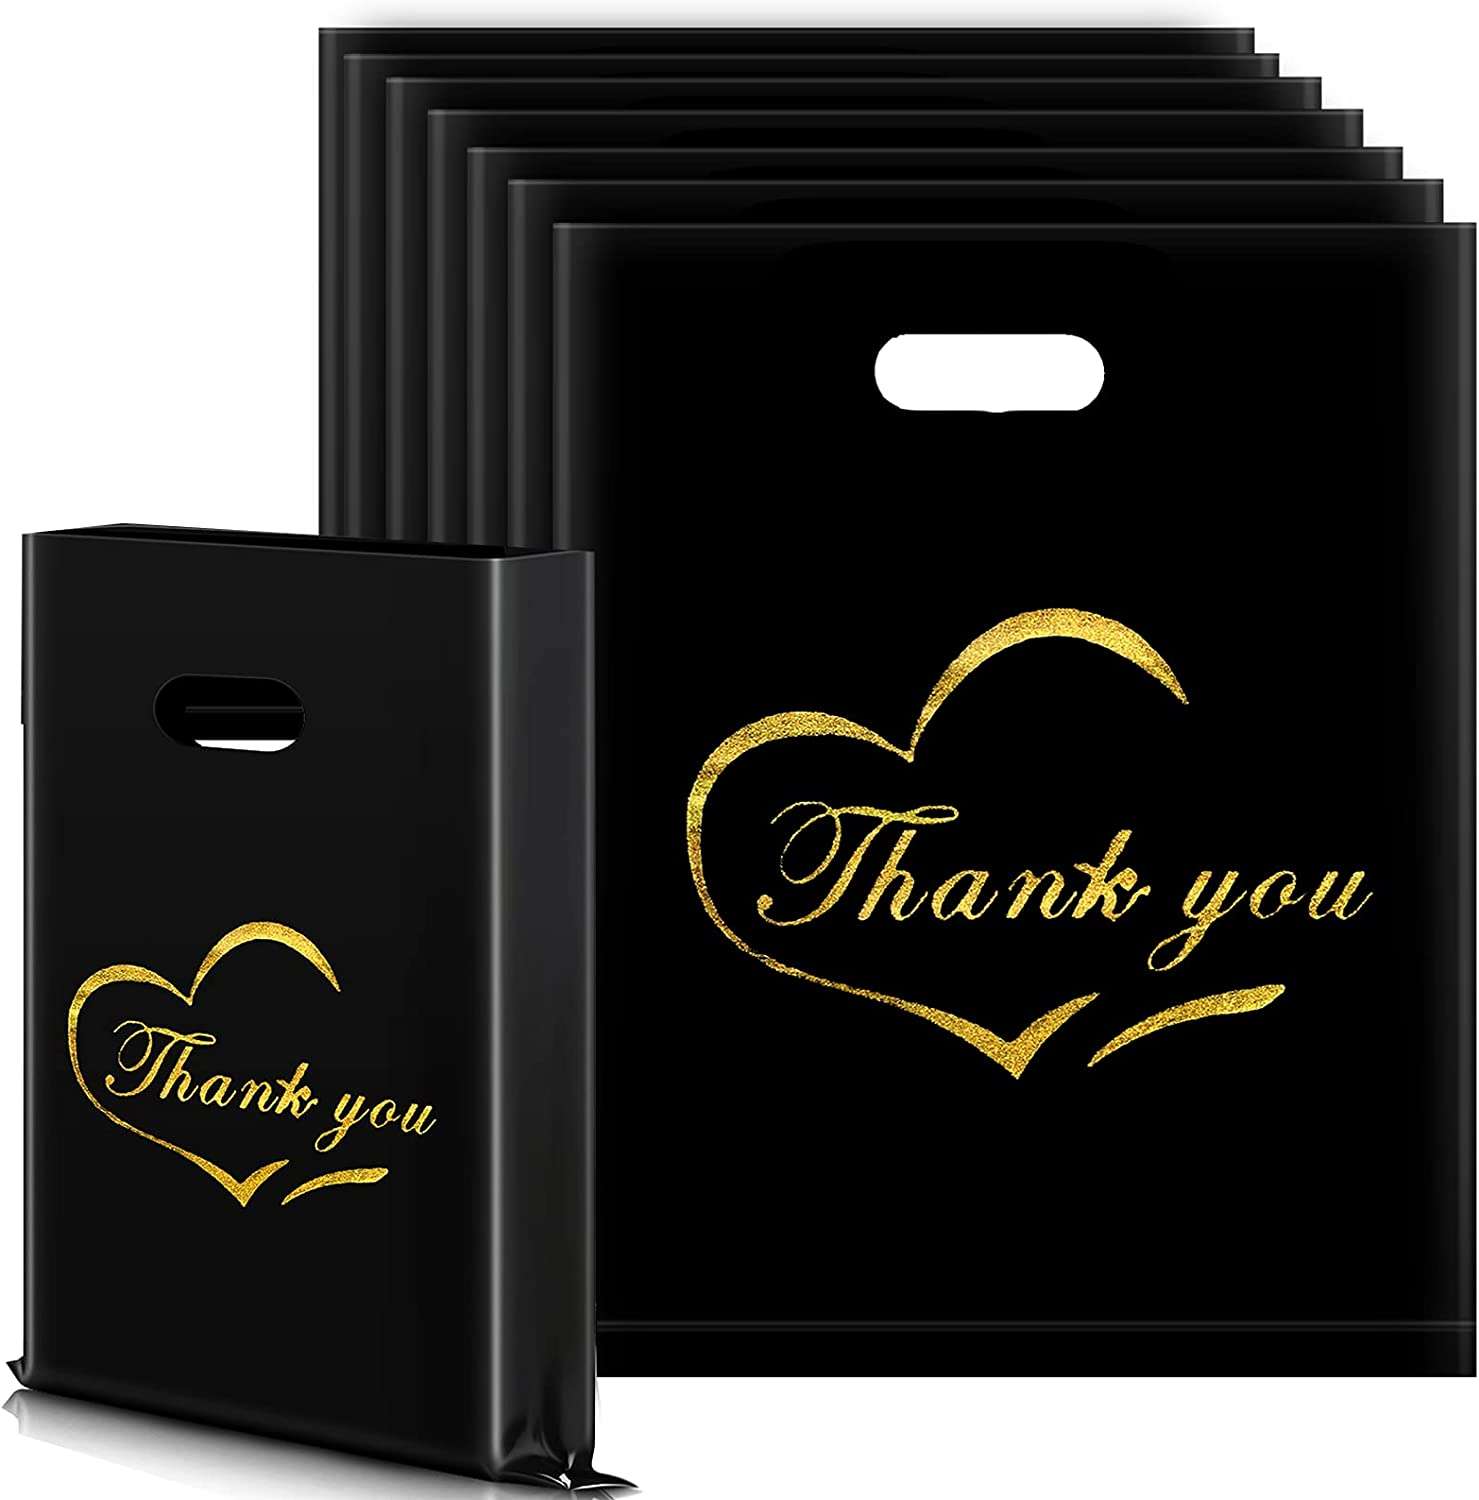 100 Pieces Thank You Business Bags 12 Max 47% OFF Black M 15 Financial sales sale x Reusable Inch